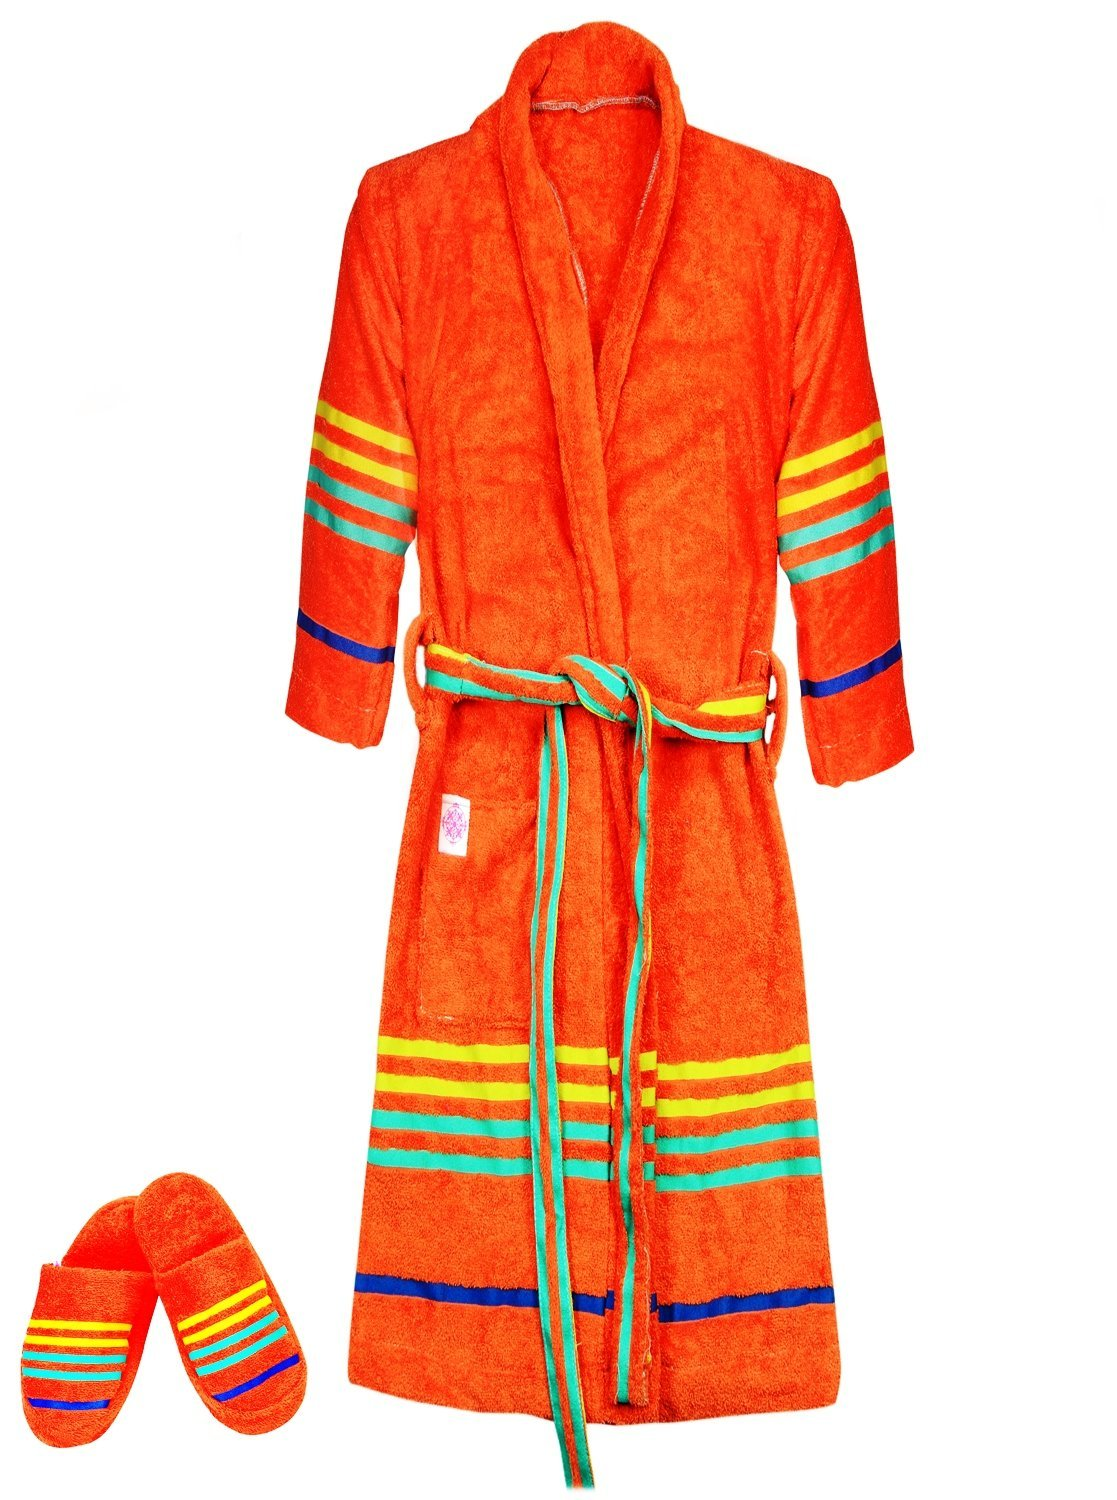 e10cfd6b8d Get Quotations · Casa Copenhagen Exotic Terry Cotton Unisex Bathrobe    Slipper Set